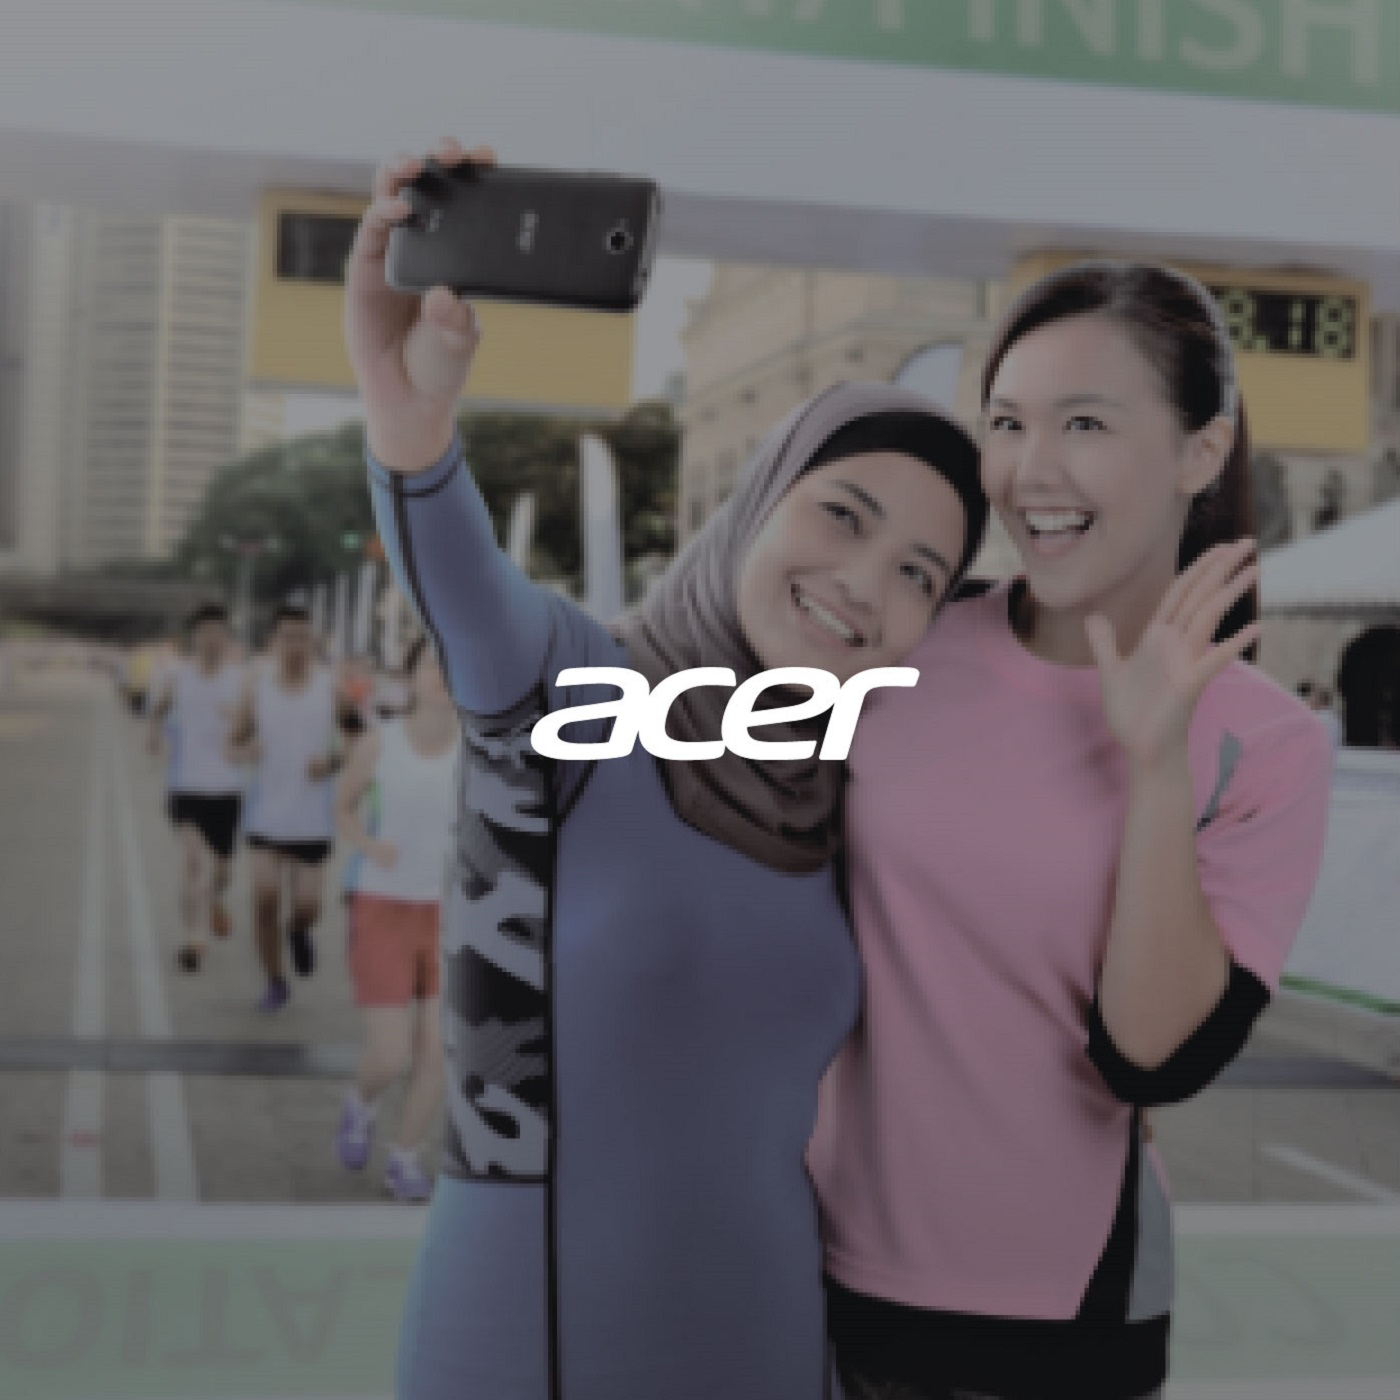 acer-square